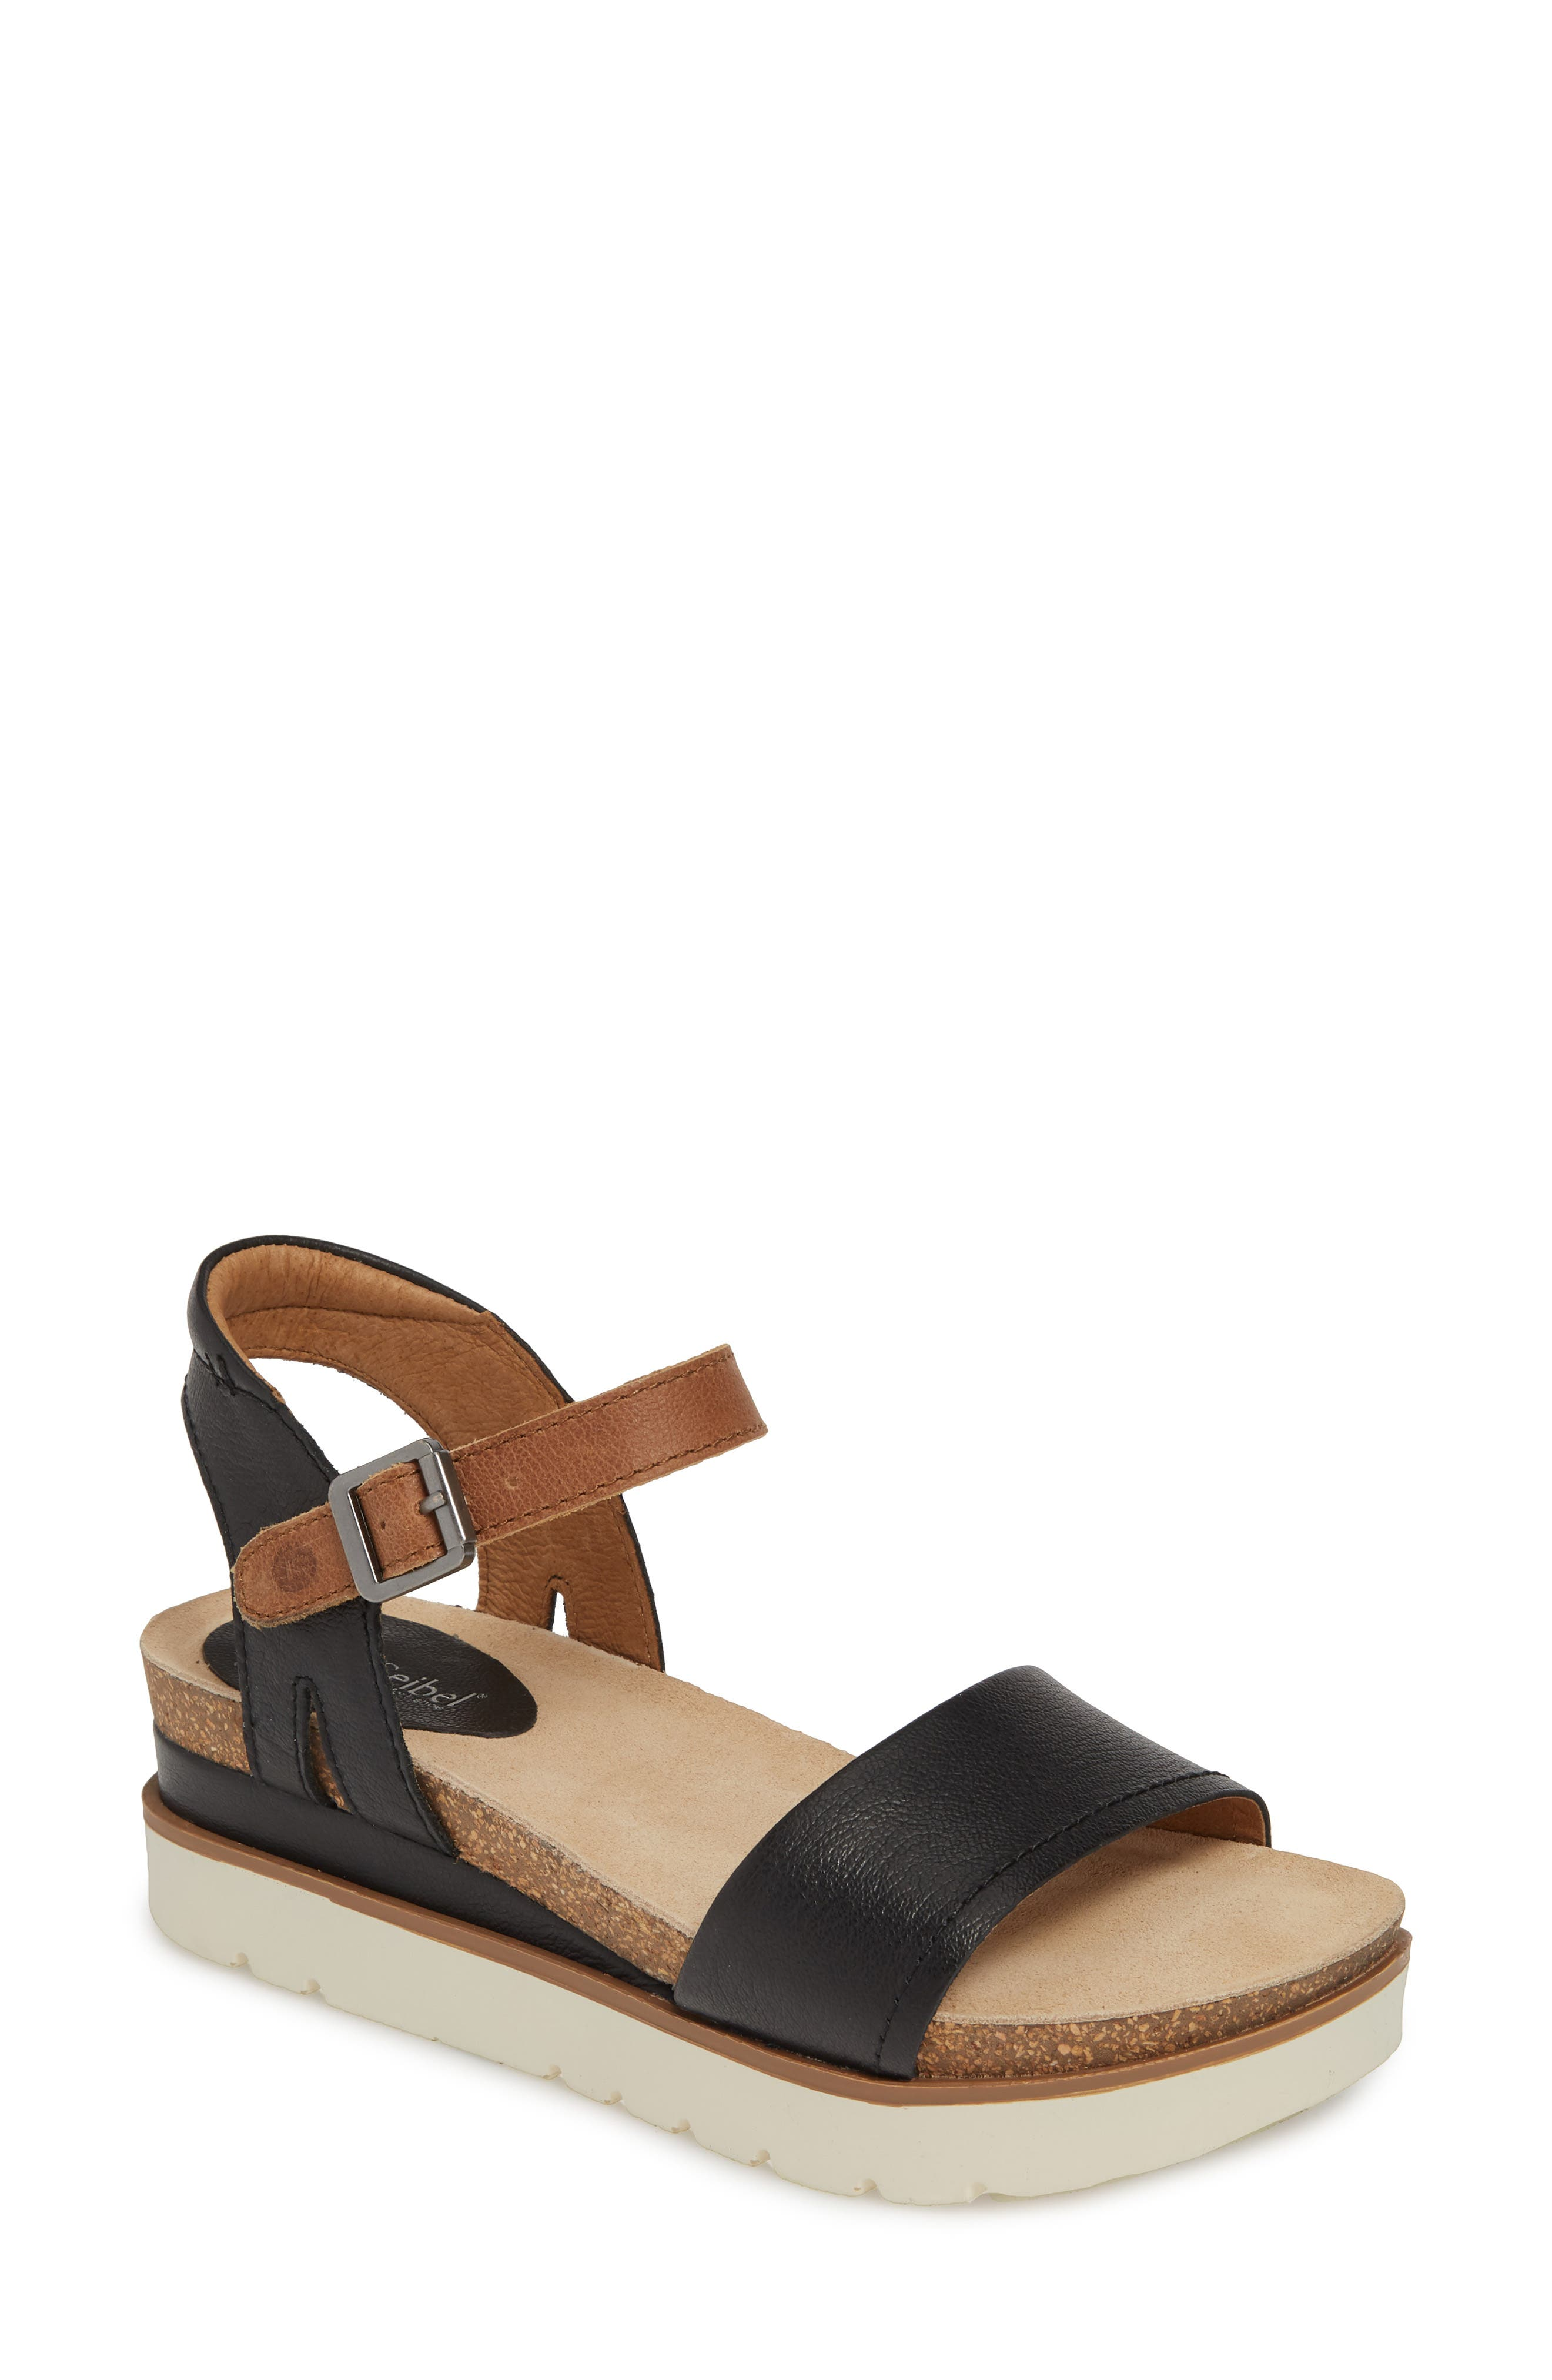 Whether you\\\'re on vacation or staycation, keep comfortable in this sporty-chic platform sandal made with a durable sole that flexes with your foot. Style Name: Josef Seibel Clea 01 Platform Sandal (Women). Style Number: 5738691 1. Available in stores.